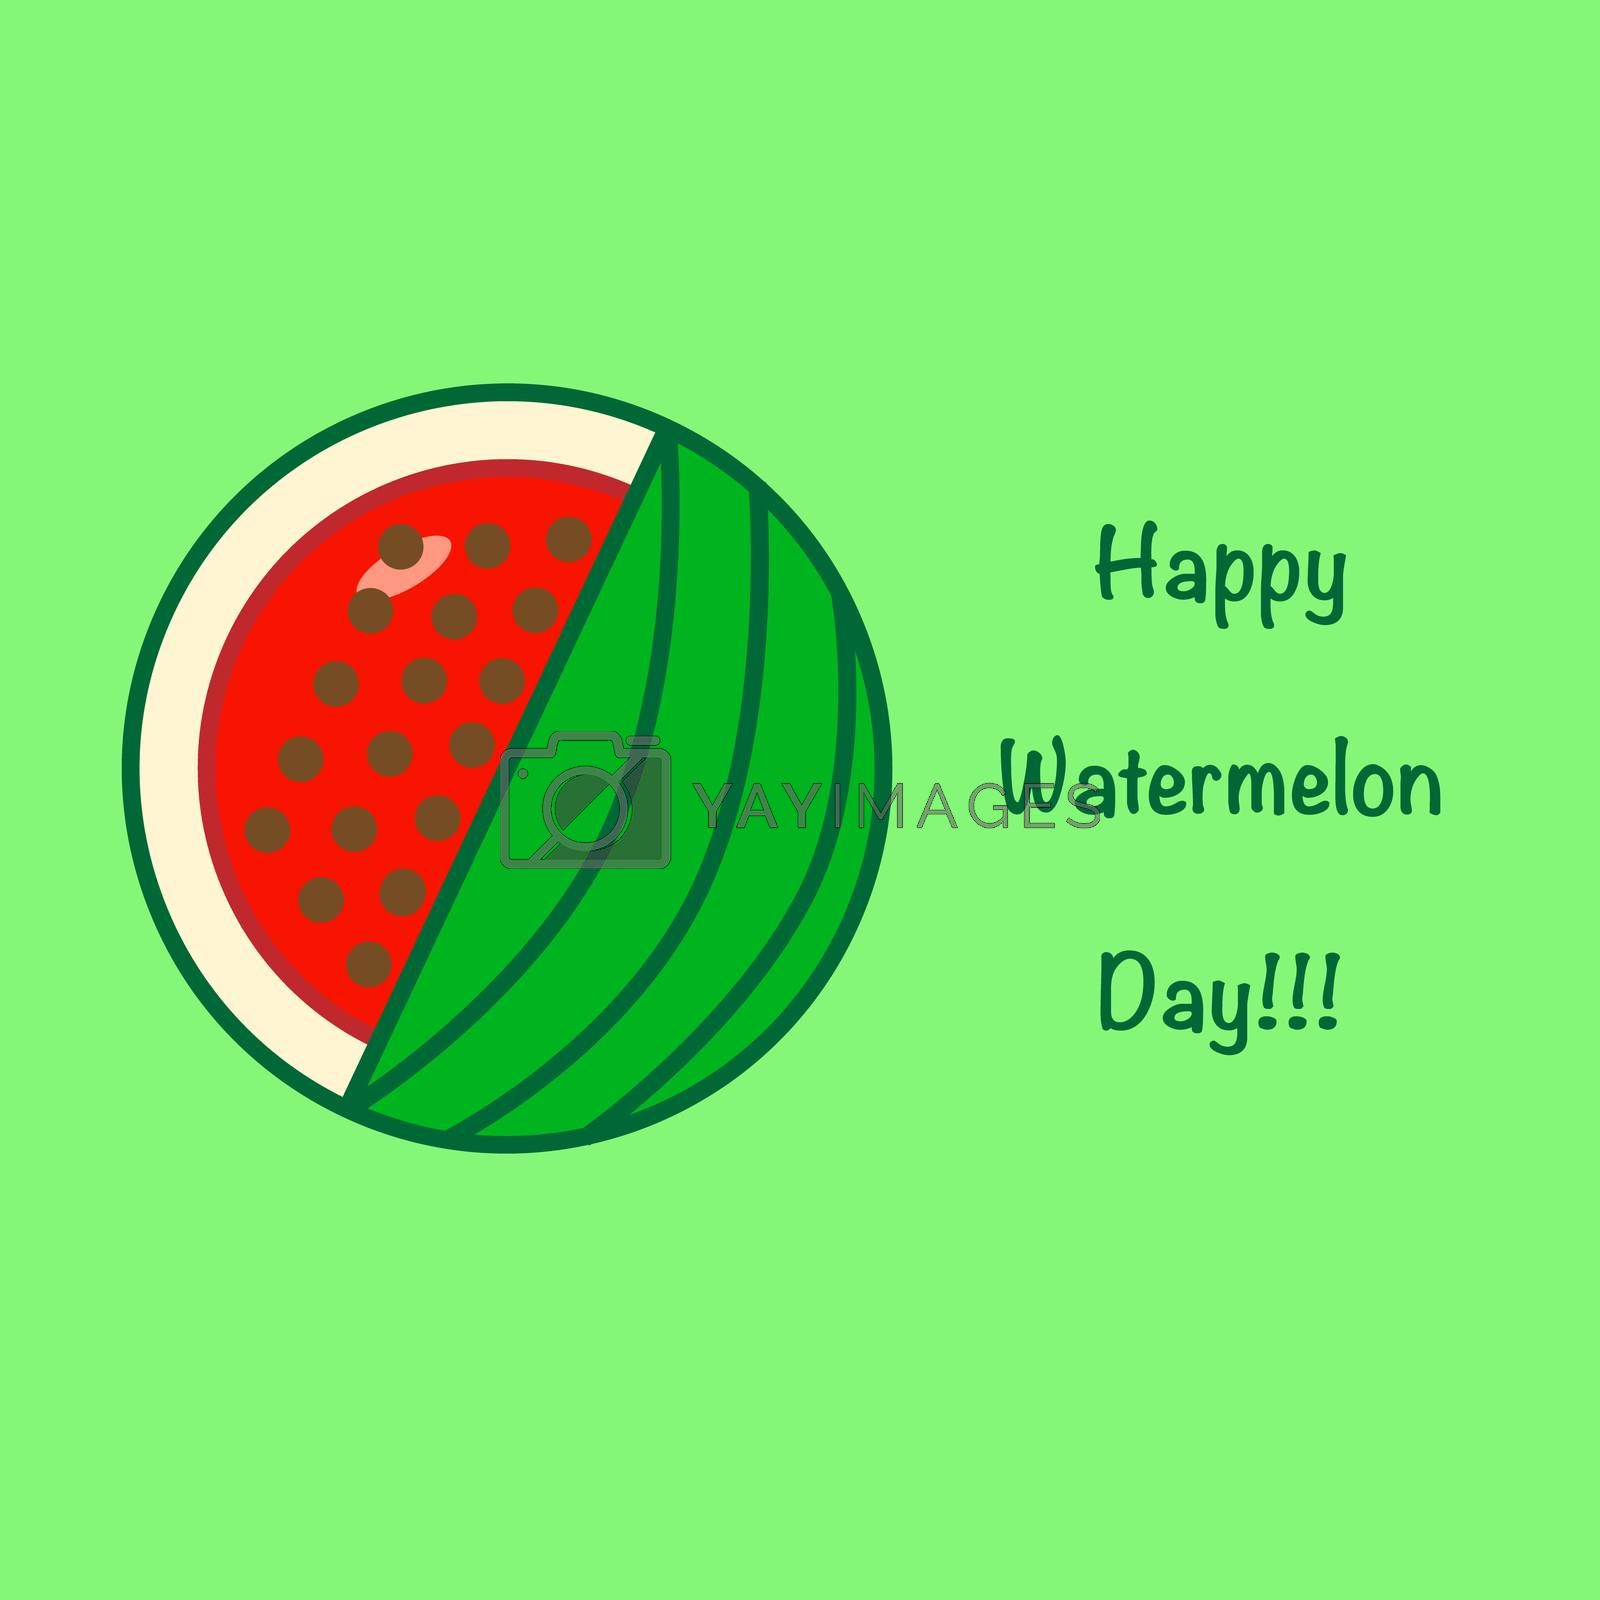 National Watermelon Day by Helga Preiman